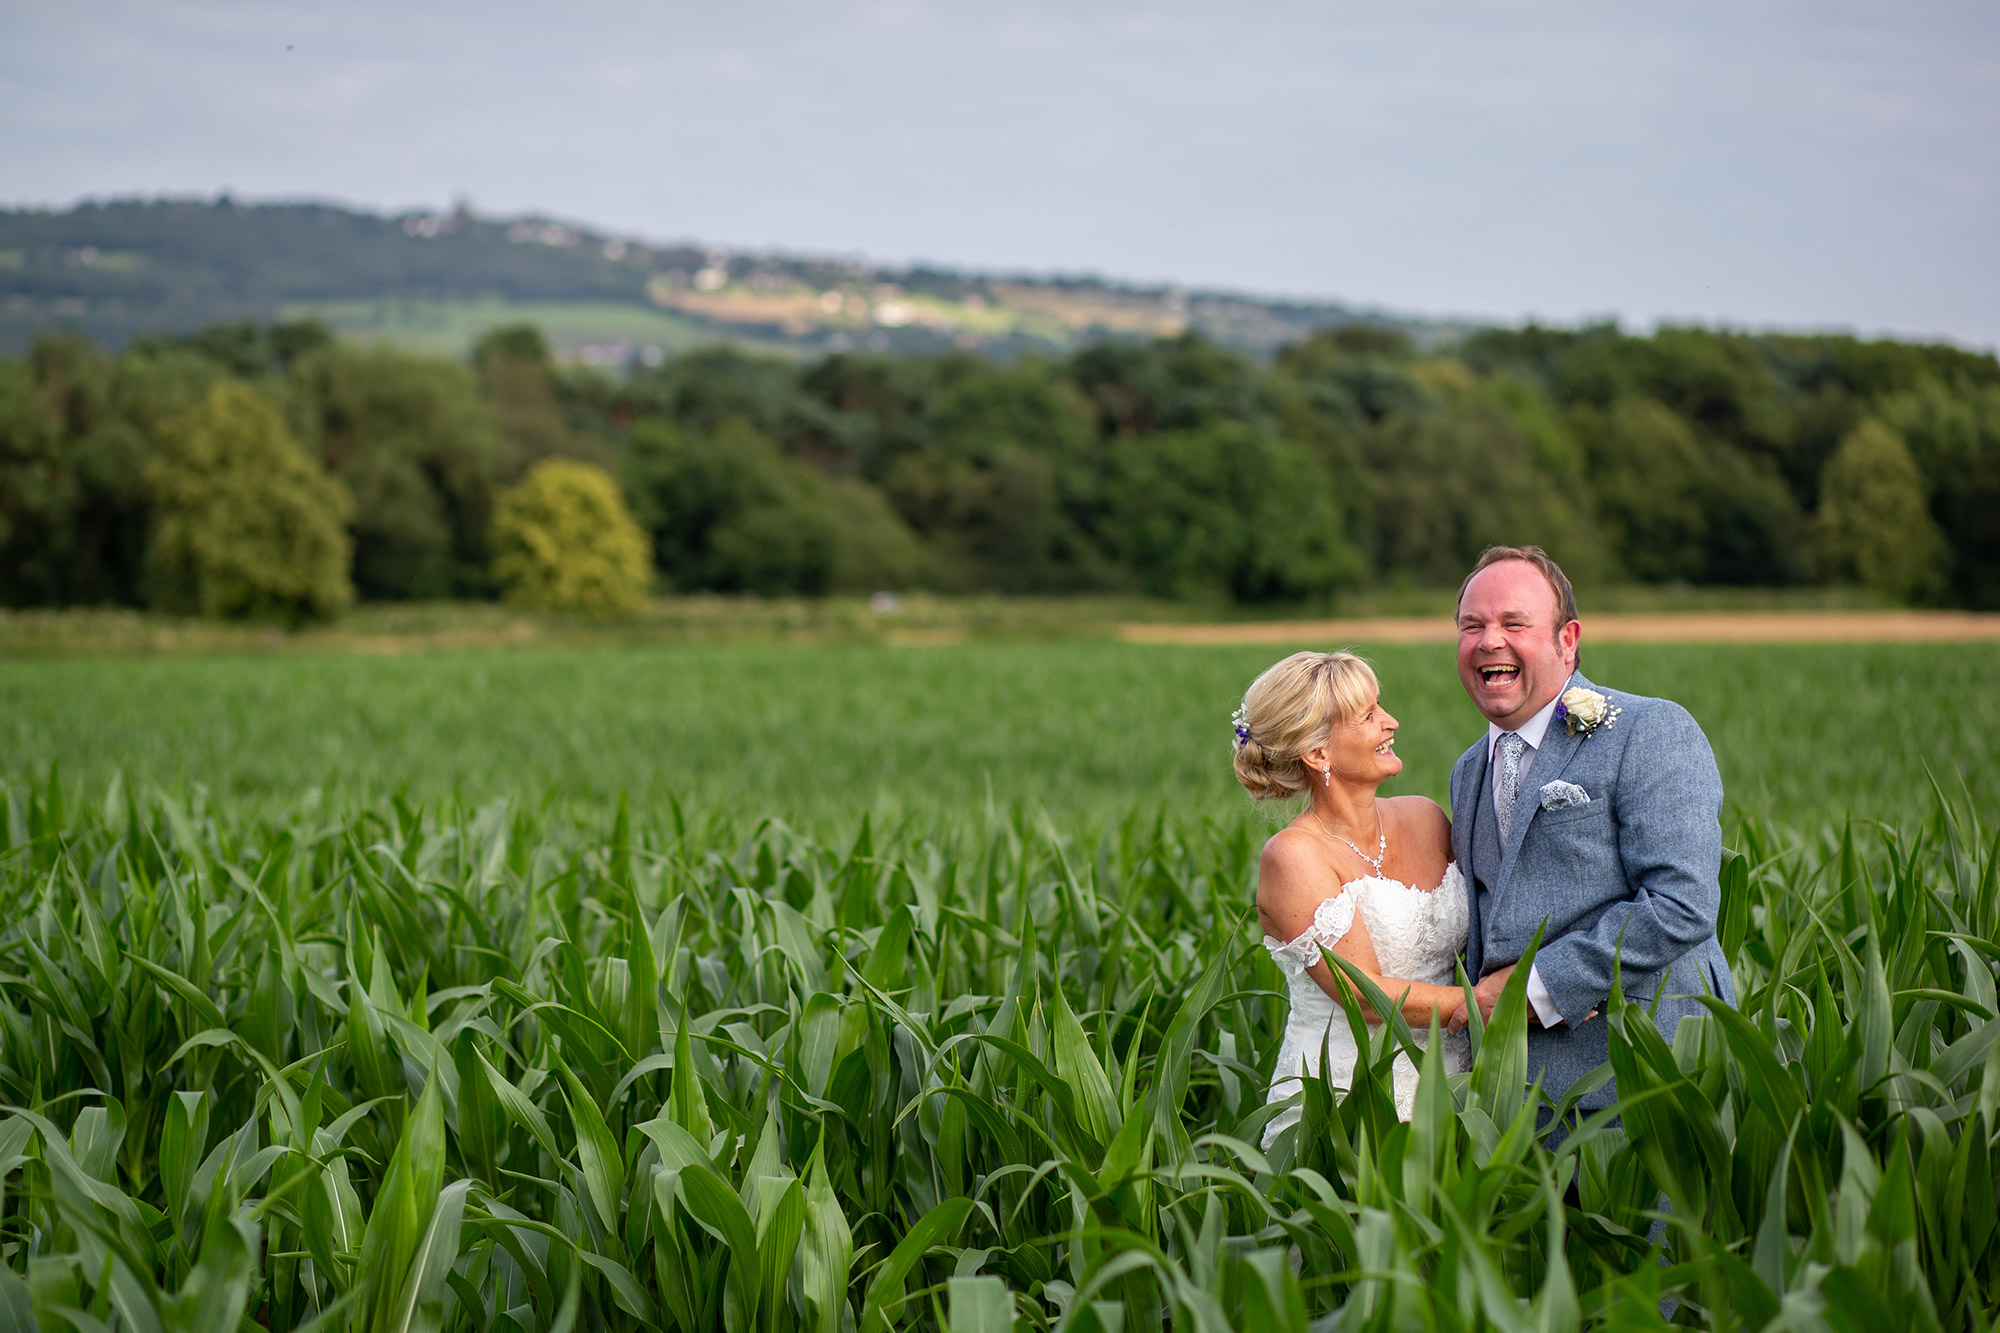 The bride and groom in a cornfield